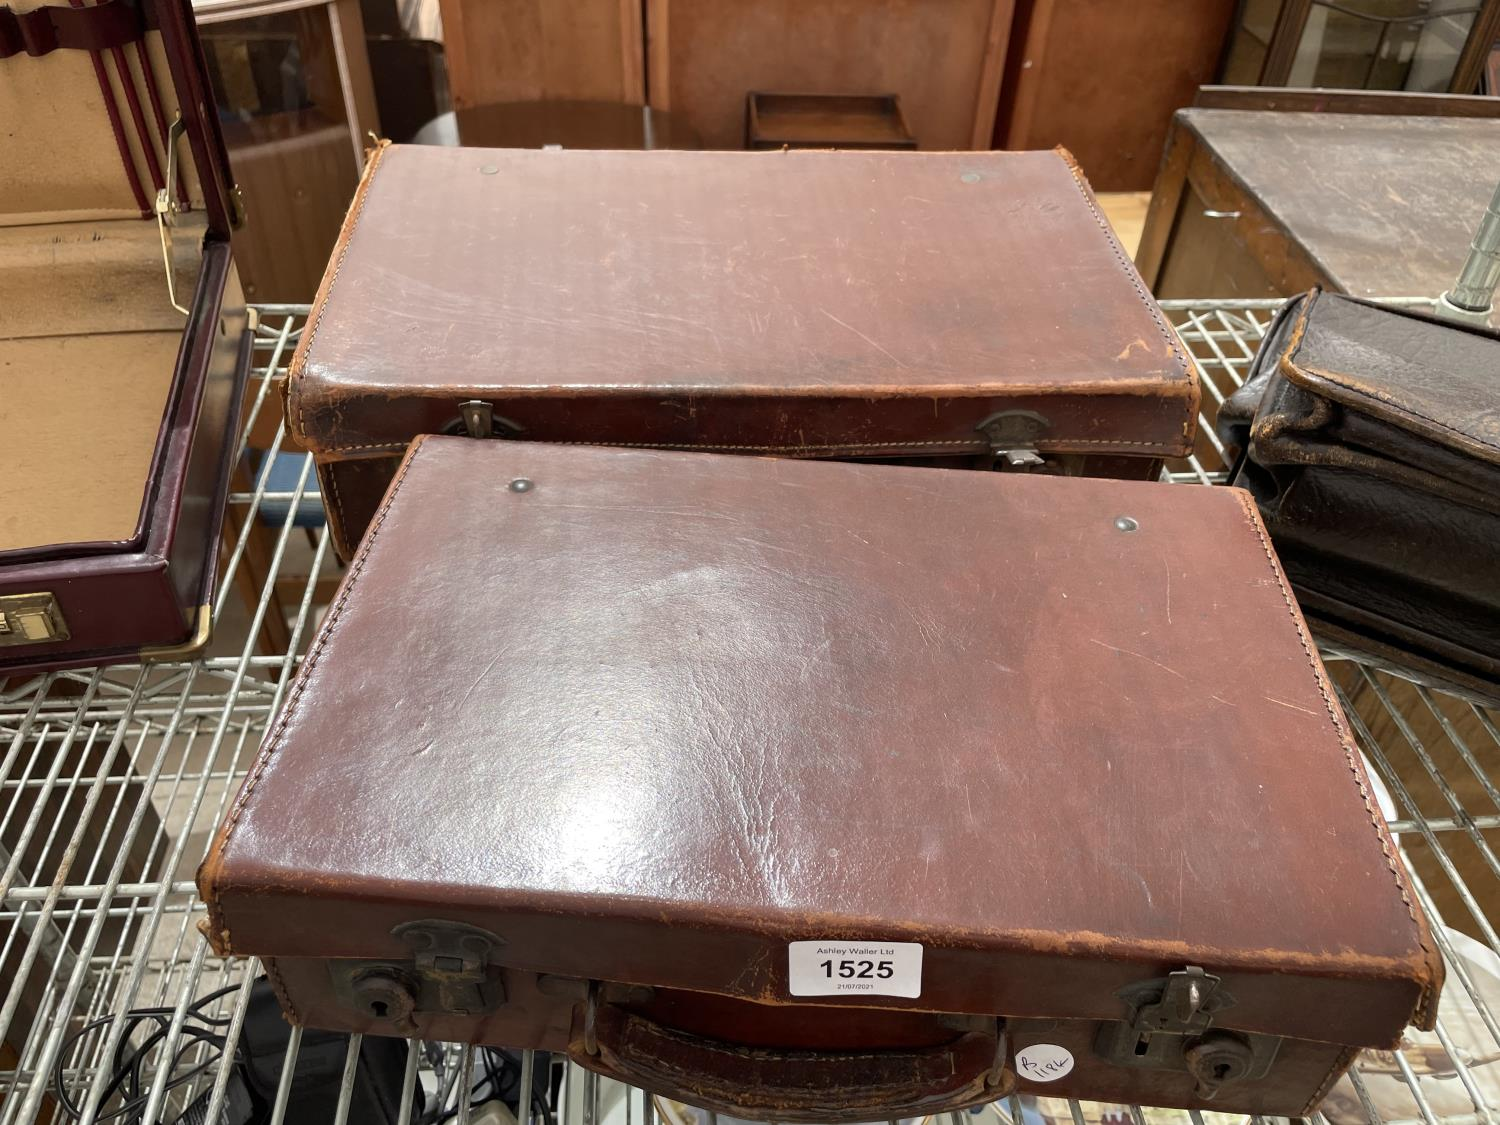 AN ASSORTMENT OF VINTAGE LEATHER TRAVEL CASES - Image 5 of 6